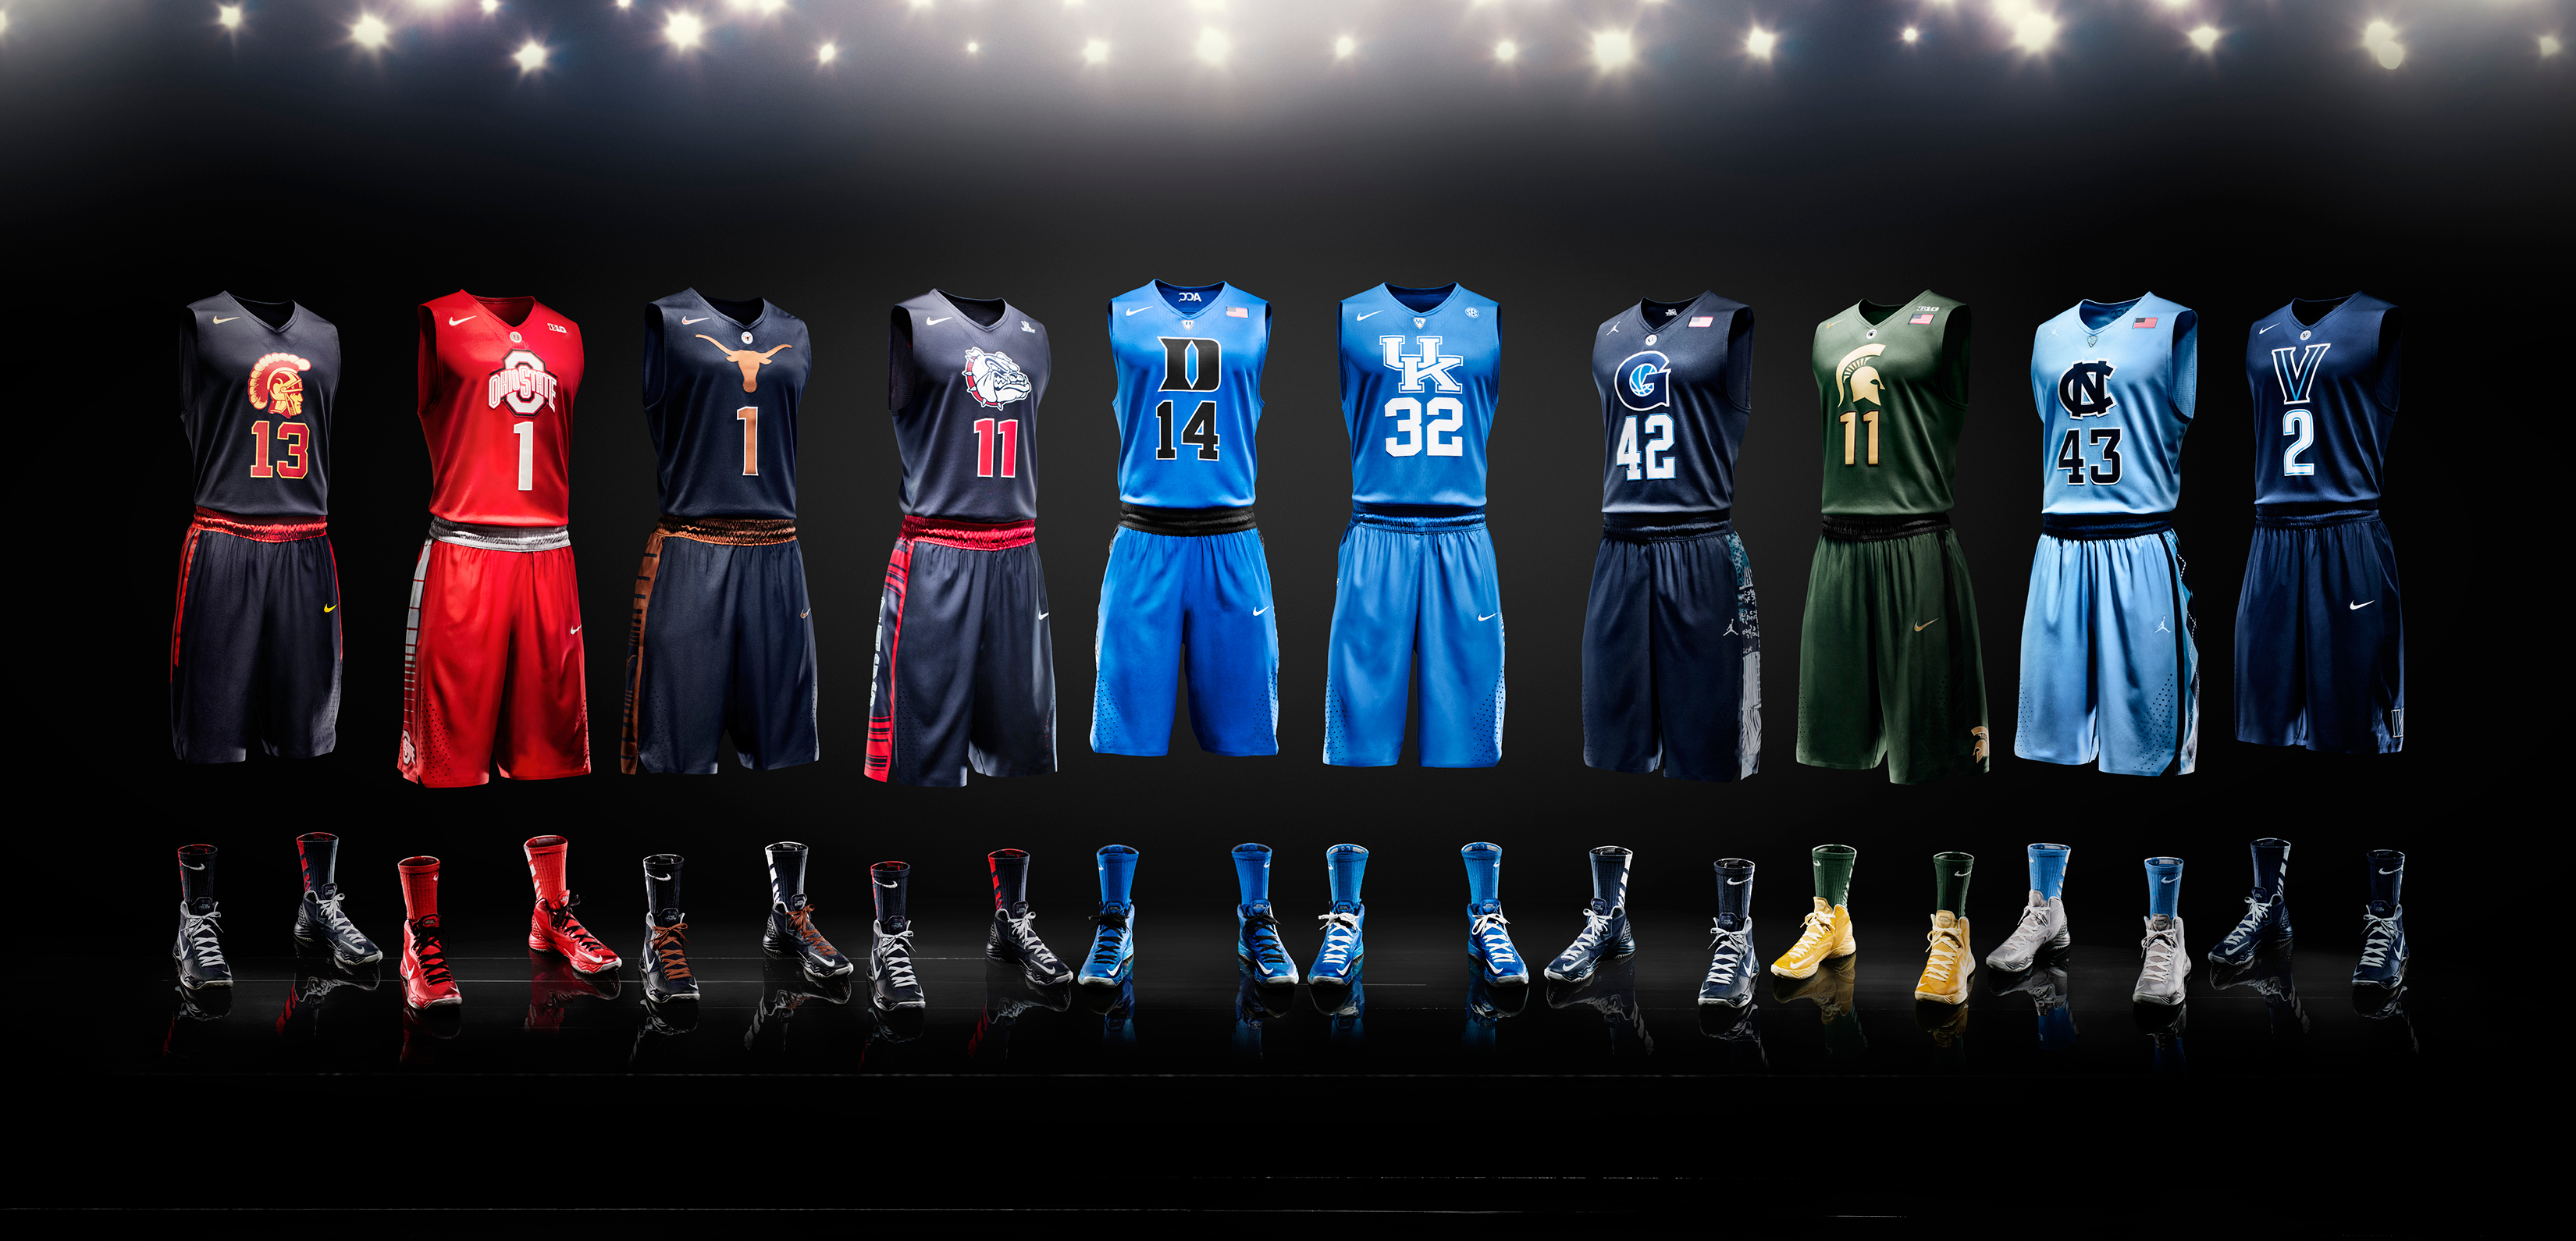 Inside Access: 25 years of NCAA Uniform Innovation - Nike News